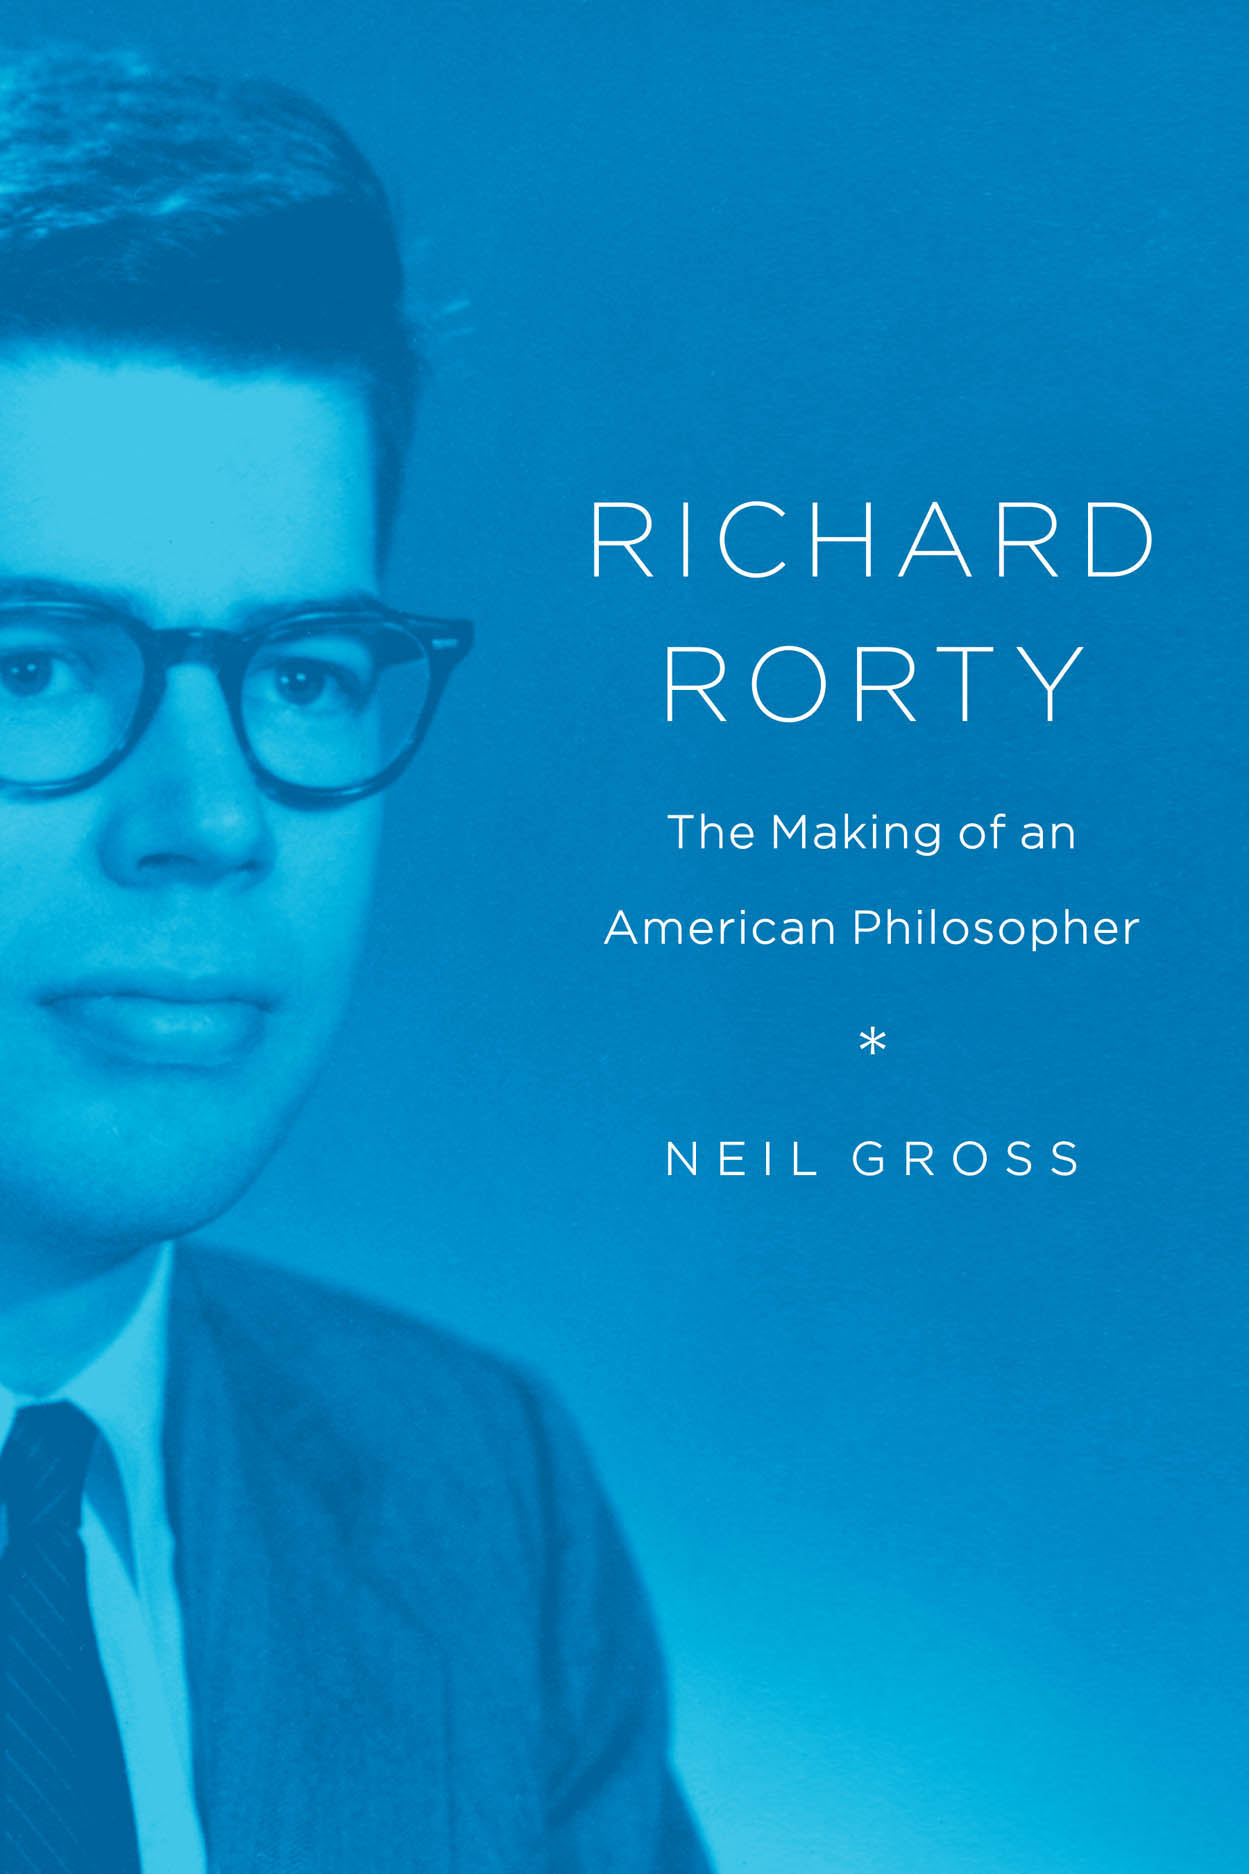 Richard Rorty: The Making of an American Philosopher